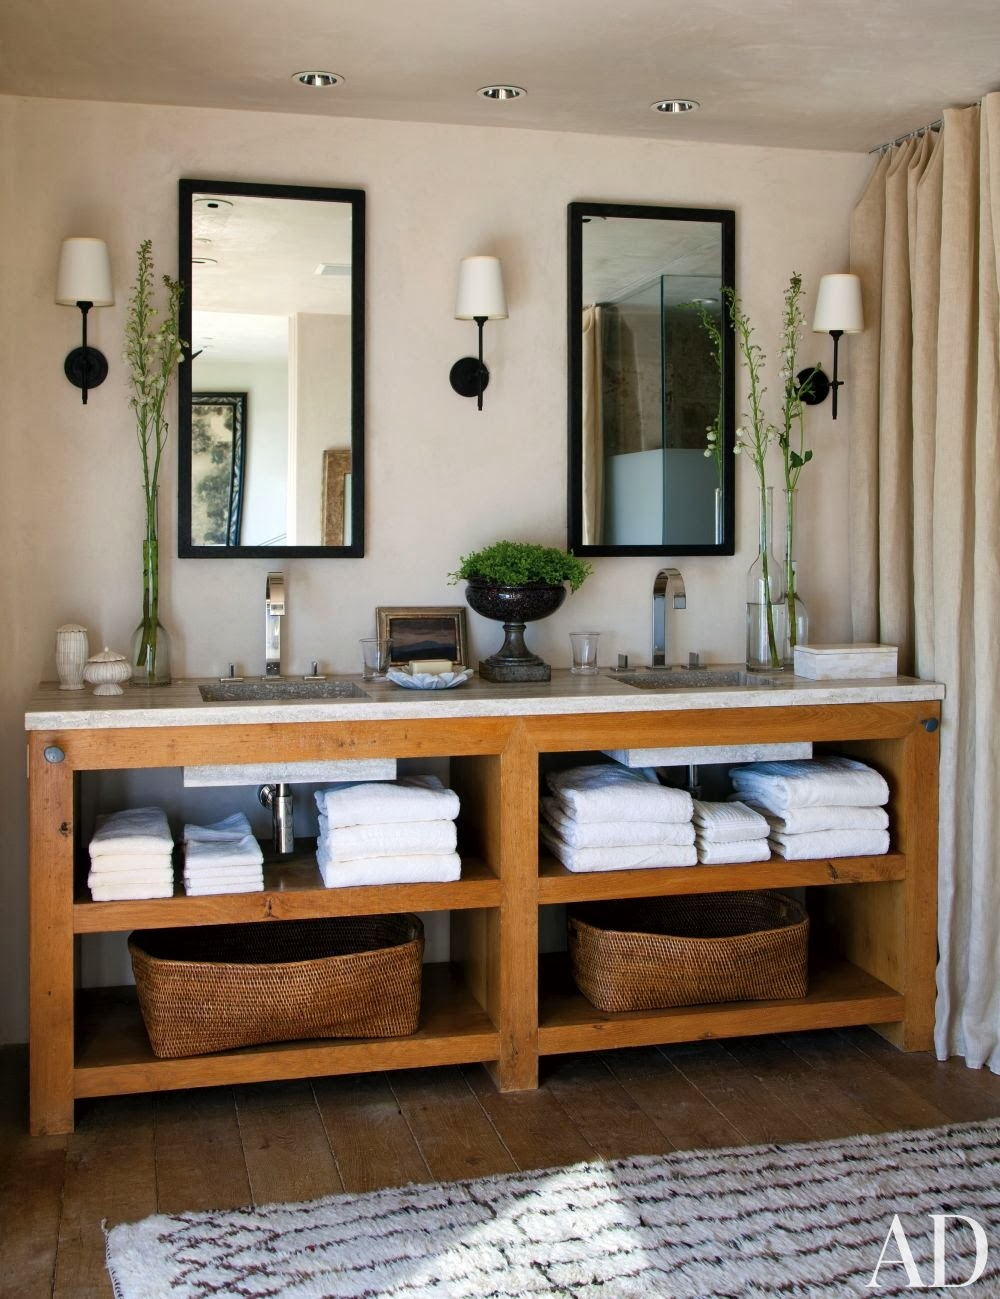 Refresheddesigns seven stunning modern rustic bathrooms for Grand meuble salle de bain